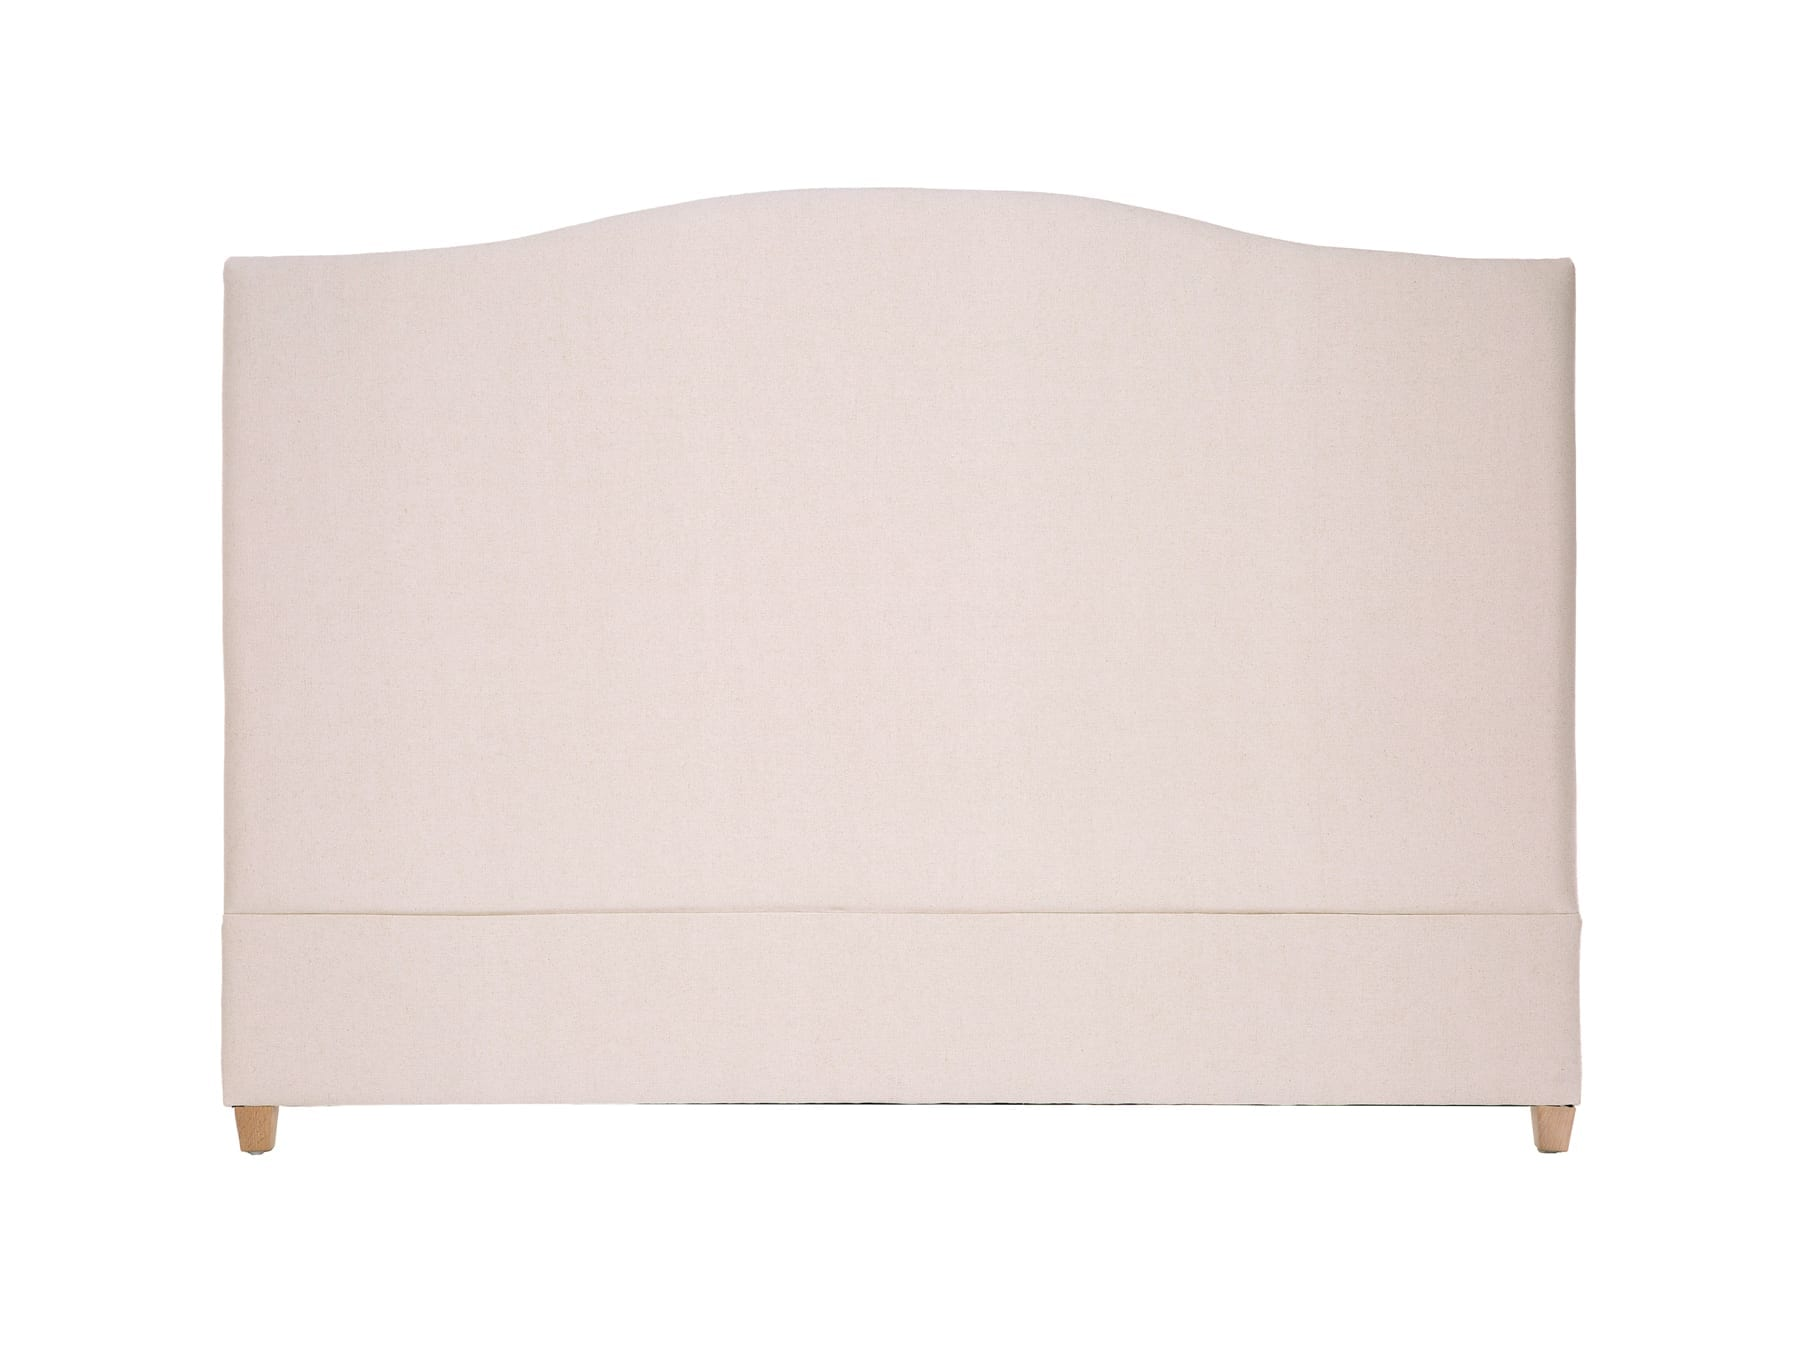 Linens & More Annabel Headboard in Natural Linen available at McKenzie & Willis